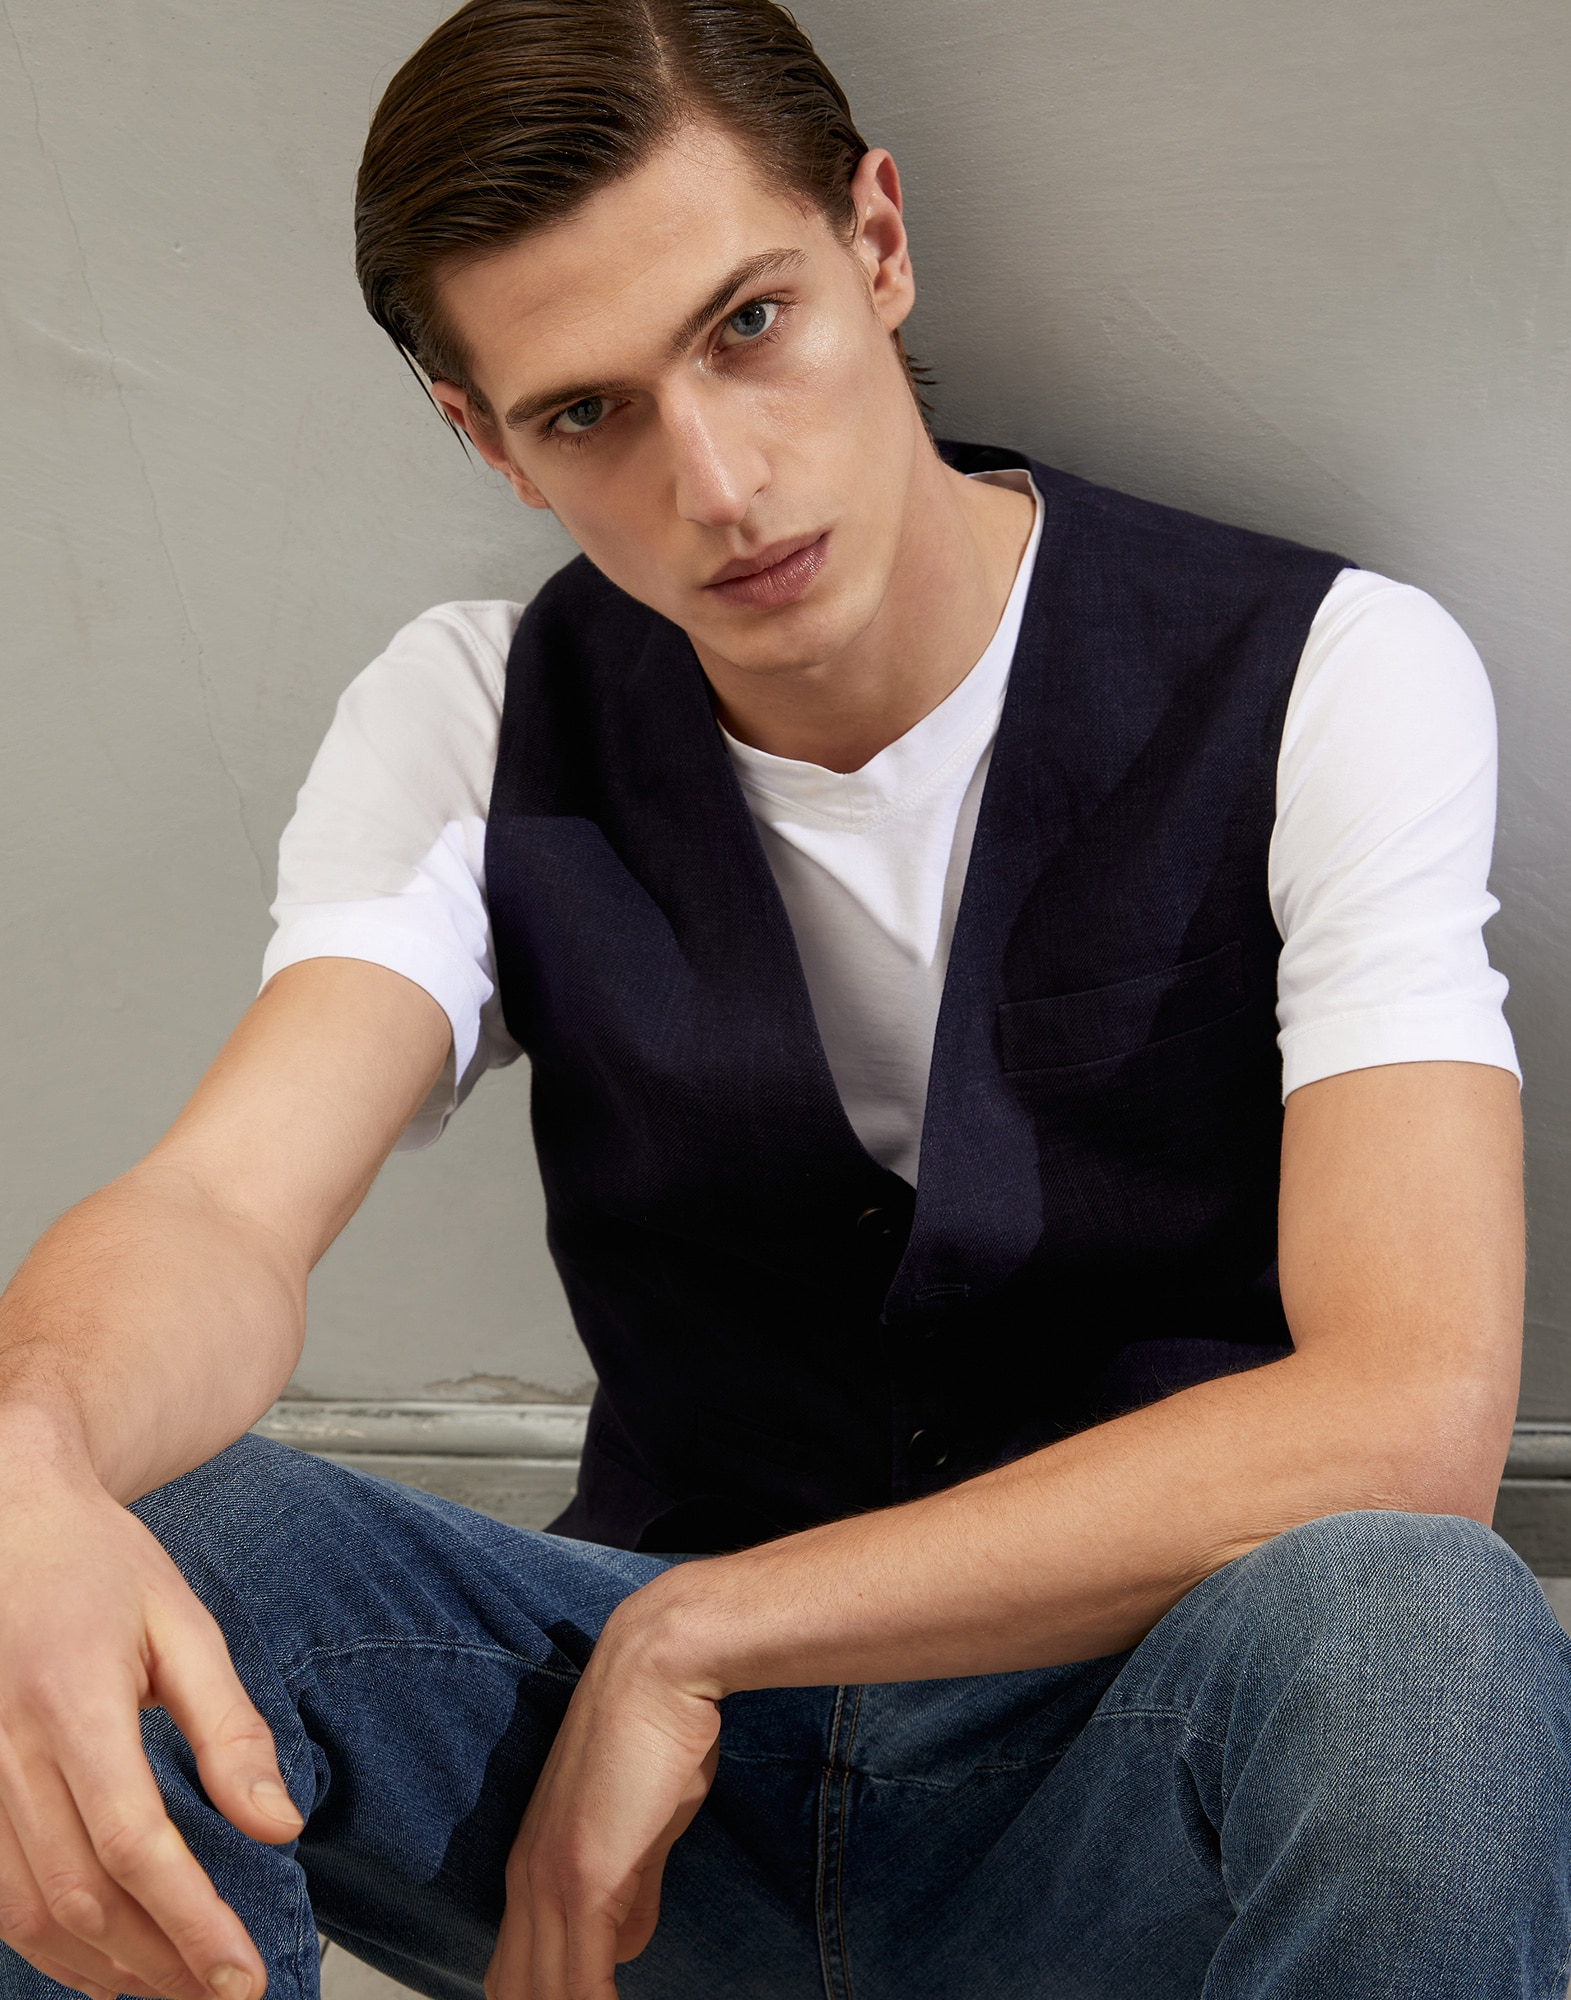 Waistcoat - Editorial view